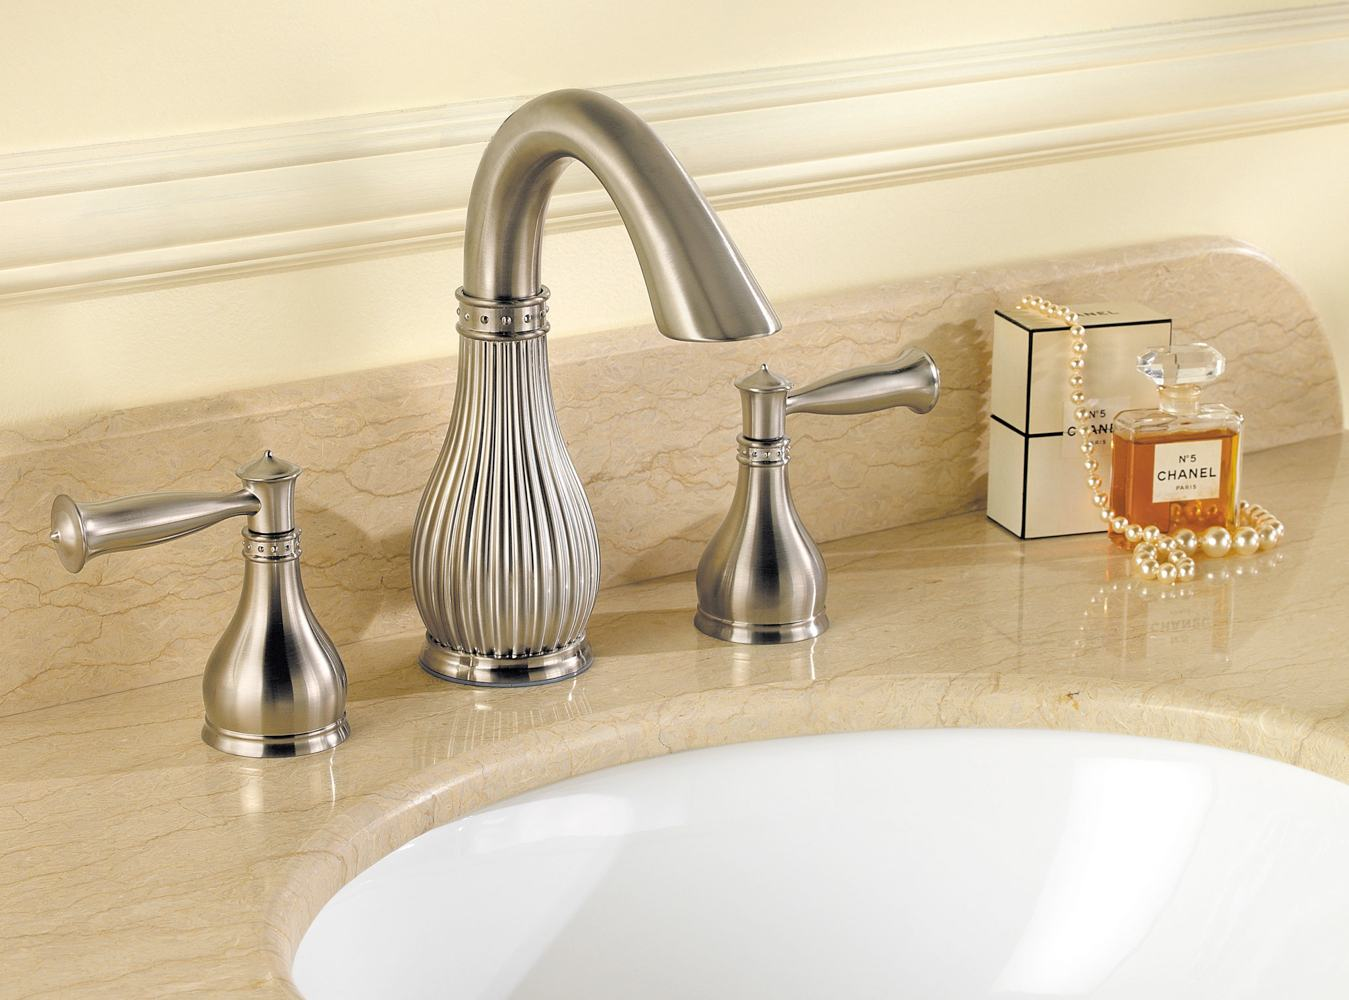 Widespread Bathroom Faucet Clearance : ... Widespread Bathroom Faucet, Tuscan Bronze - Touch On Bathroom Sink